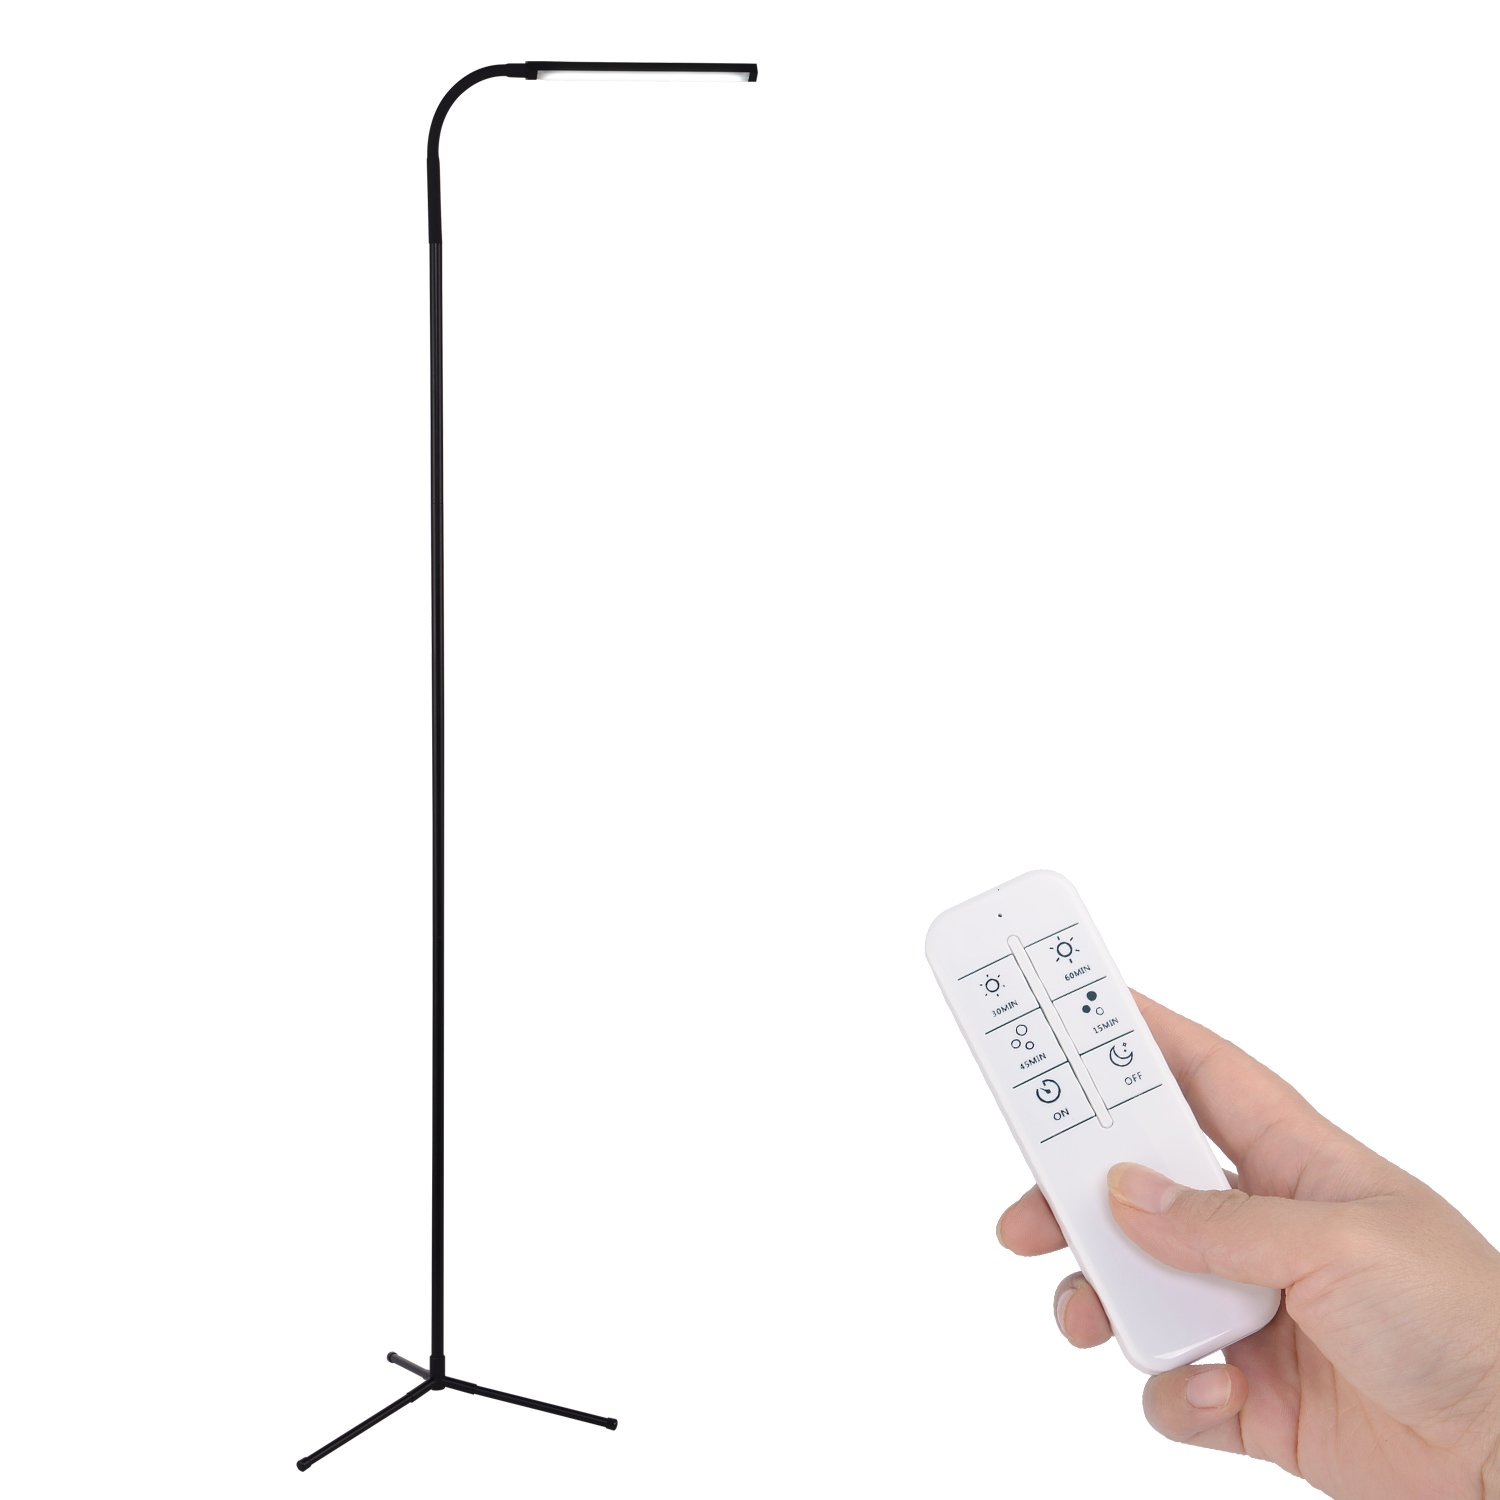 kihung remote control dimmable led floor lamp 120 level. Black Bedroom Furniture Sets. Home Design Ideas